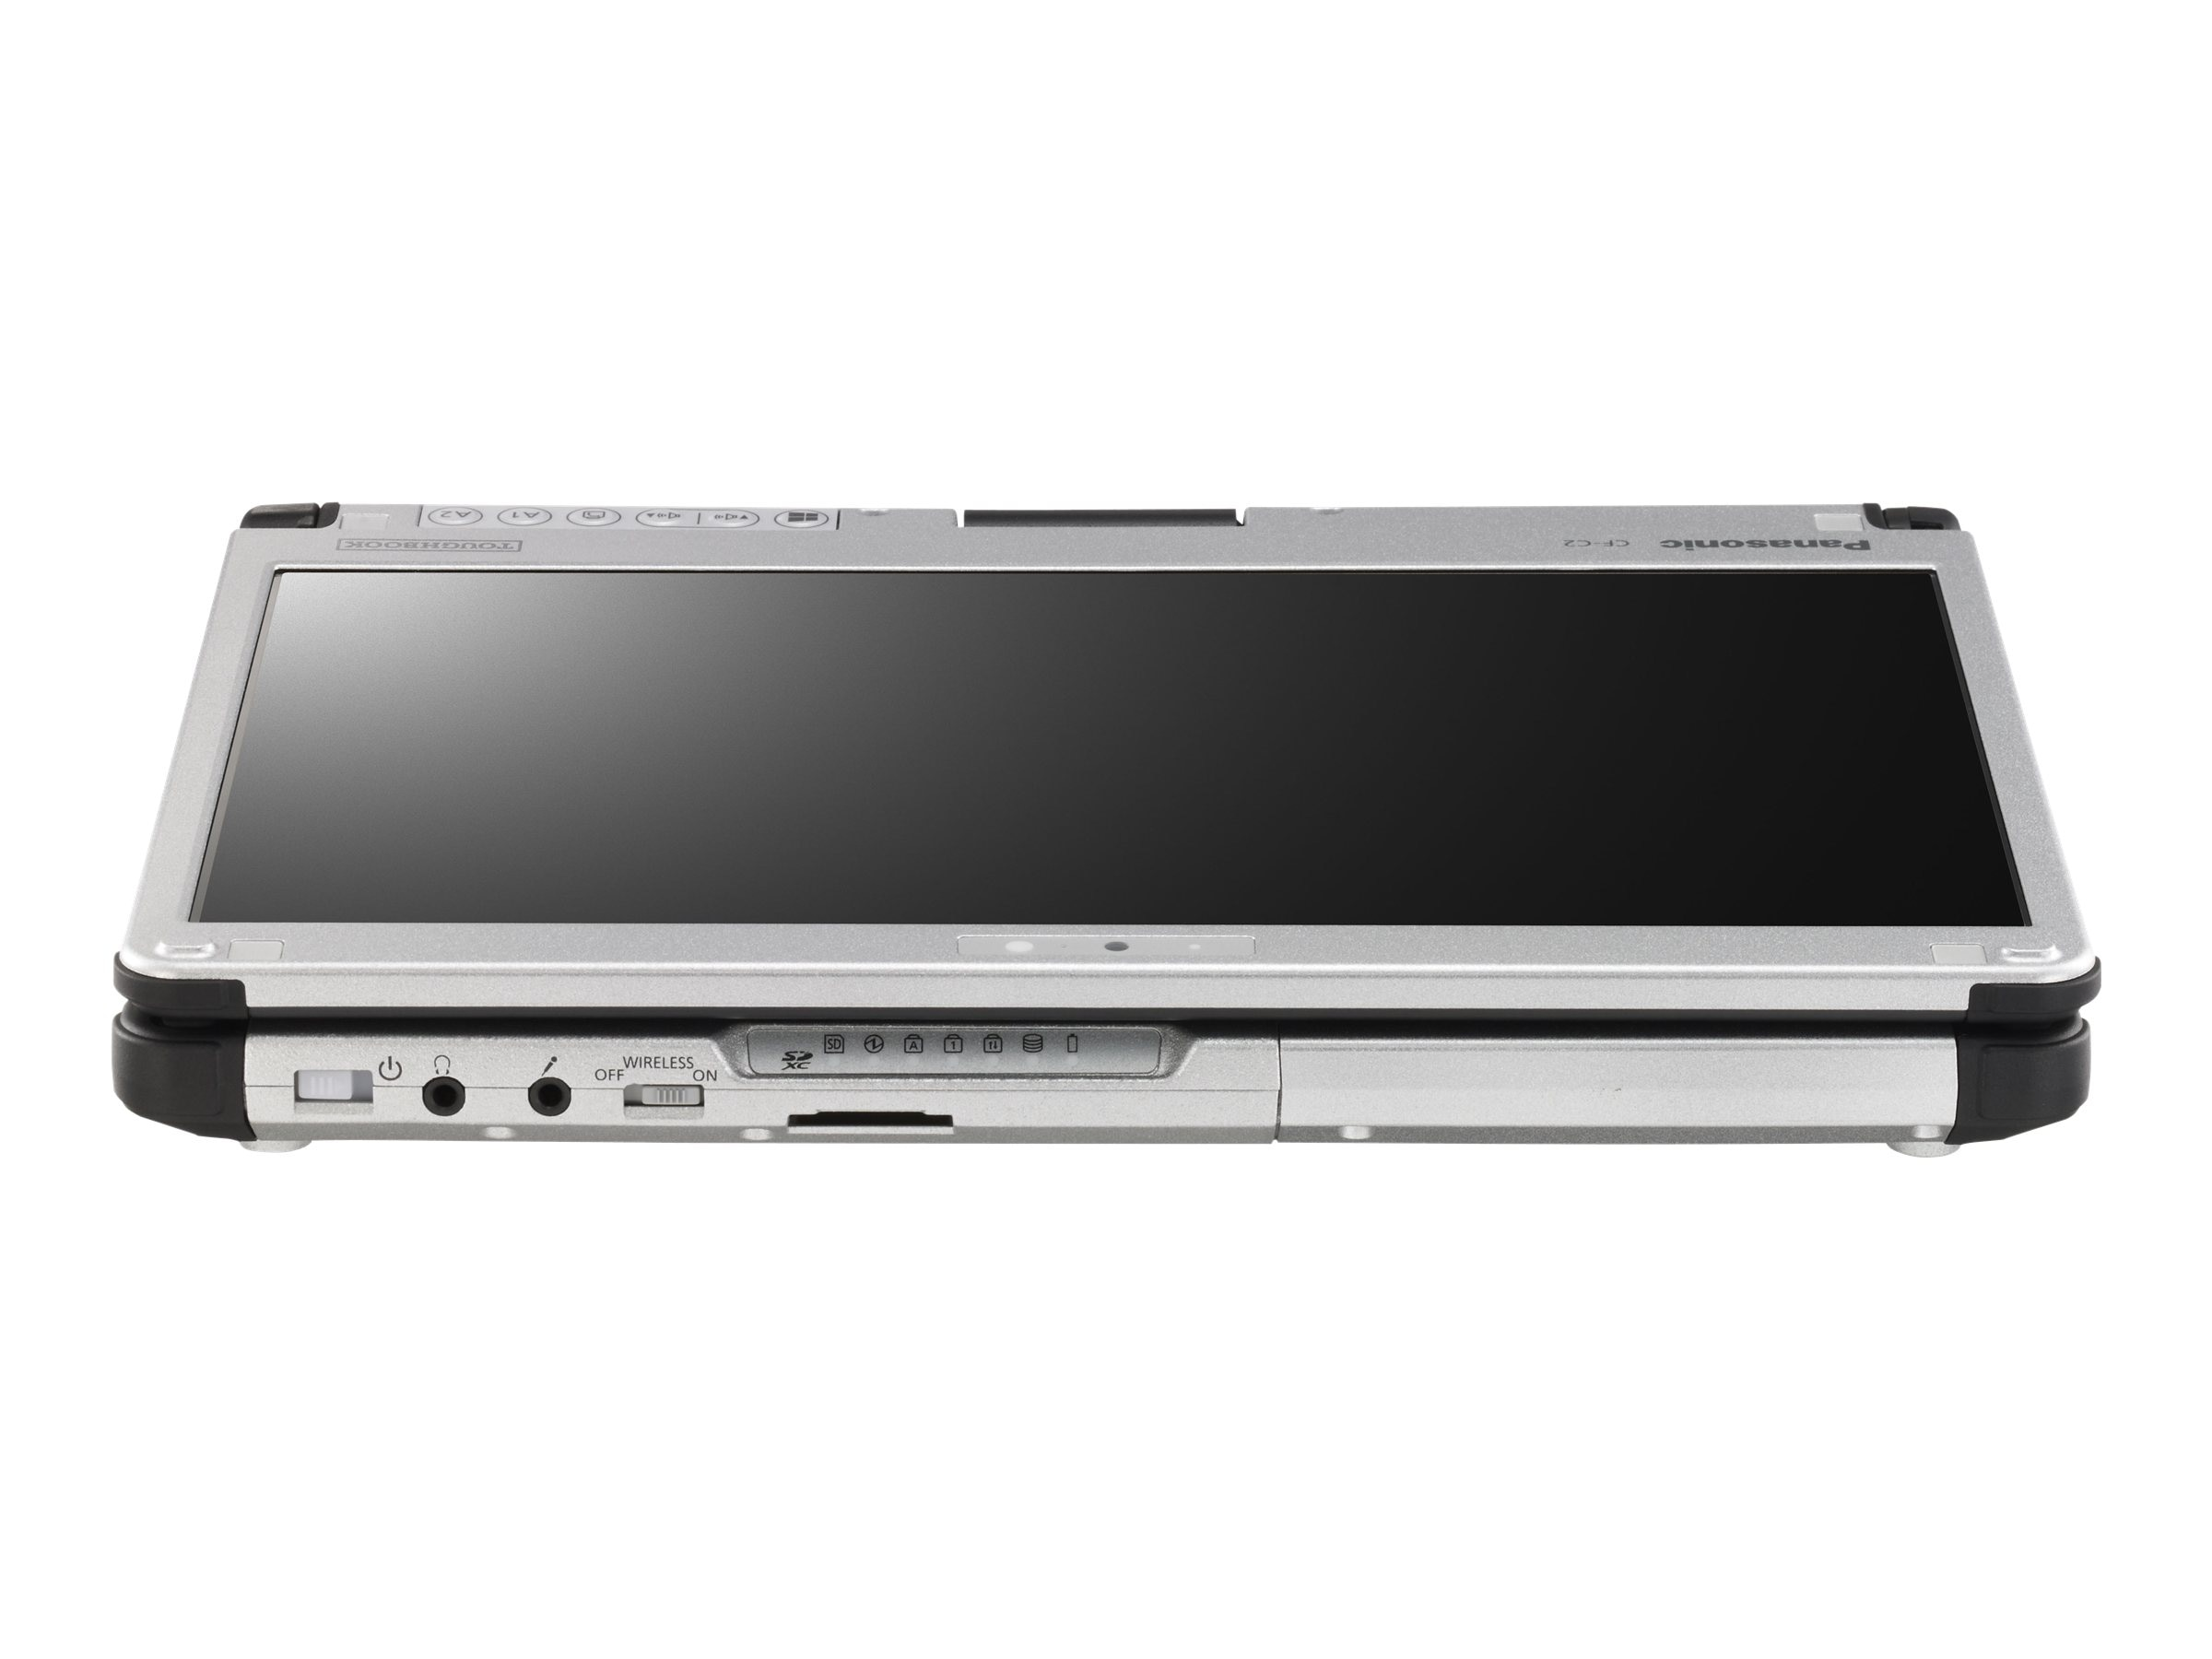 Panasonic Toughbook C2 Core i5-4310U 2.0GHz 12.5, CF-C2CYHZFVM